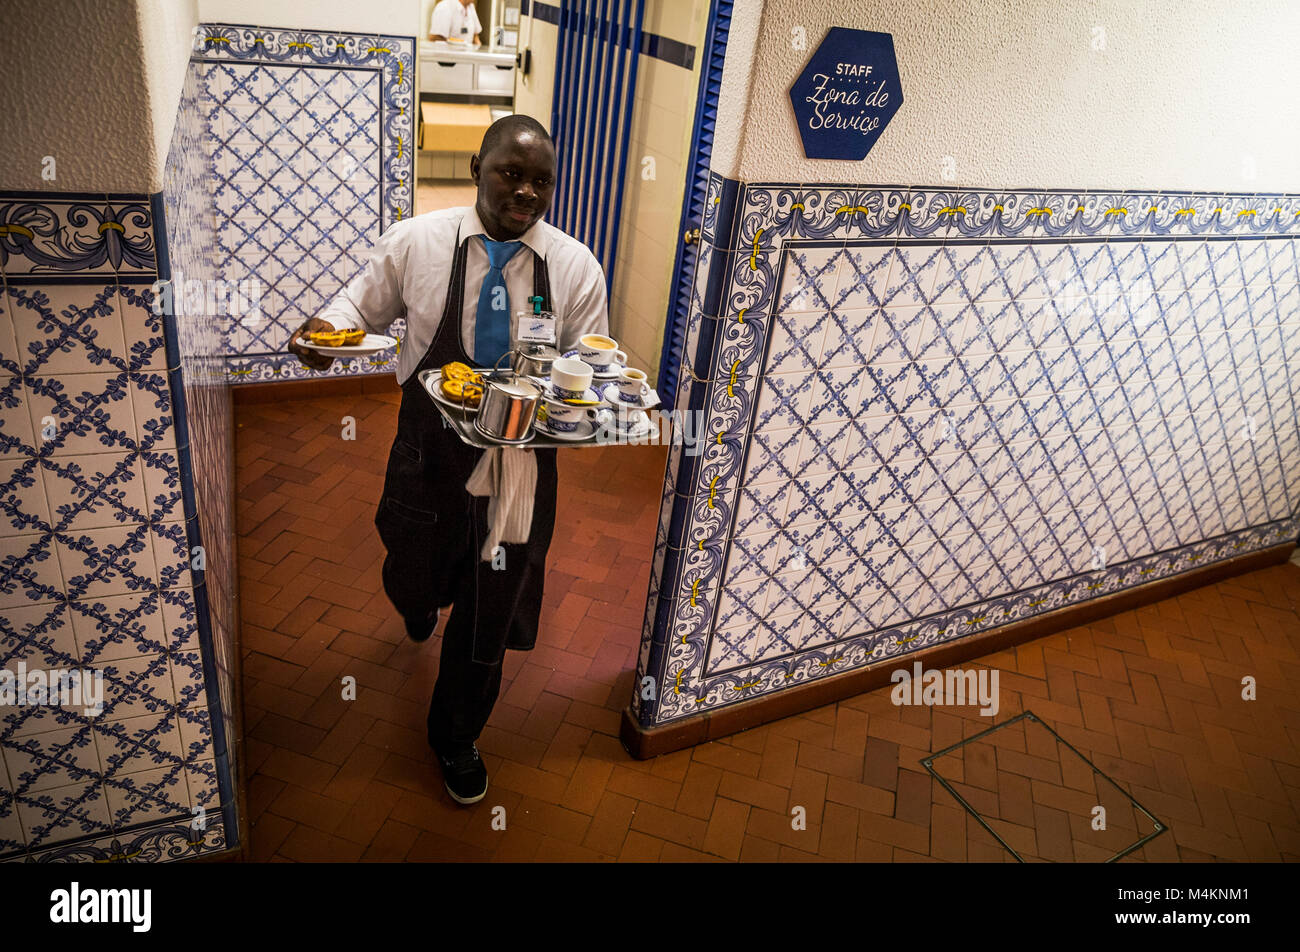 A waiter leaving the kitchen at Pasteis de Belem in Lisbon, Portugal. - Stock Image